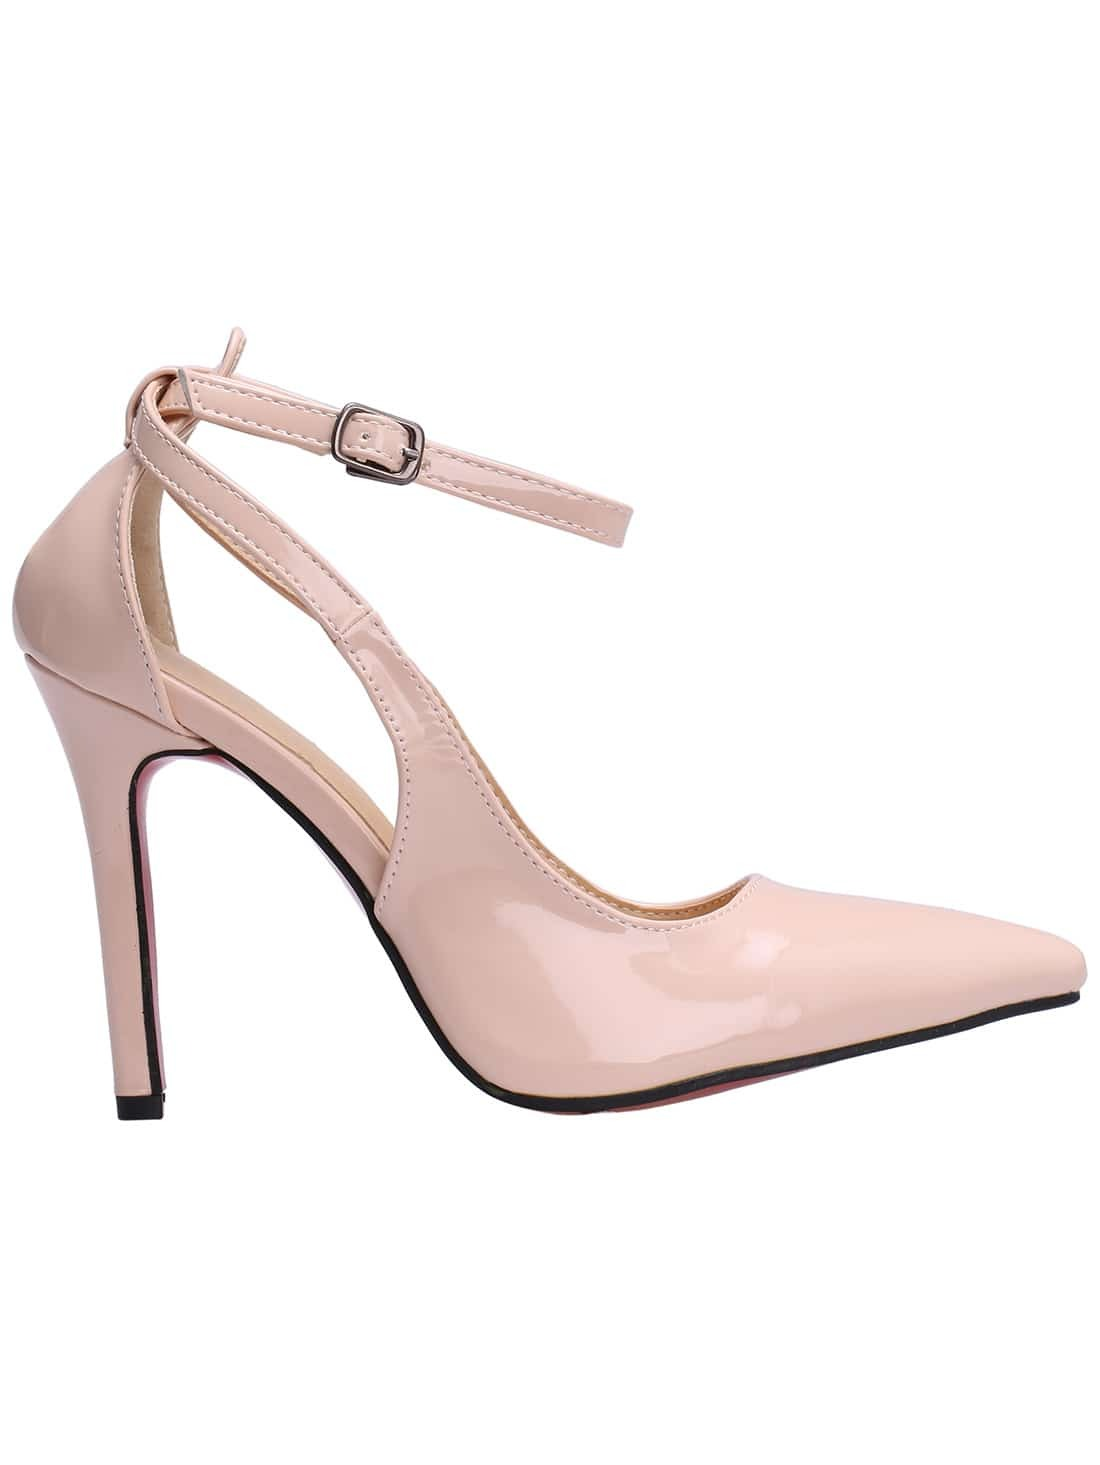 Nude pumps with ankle strap galleries 51